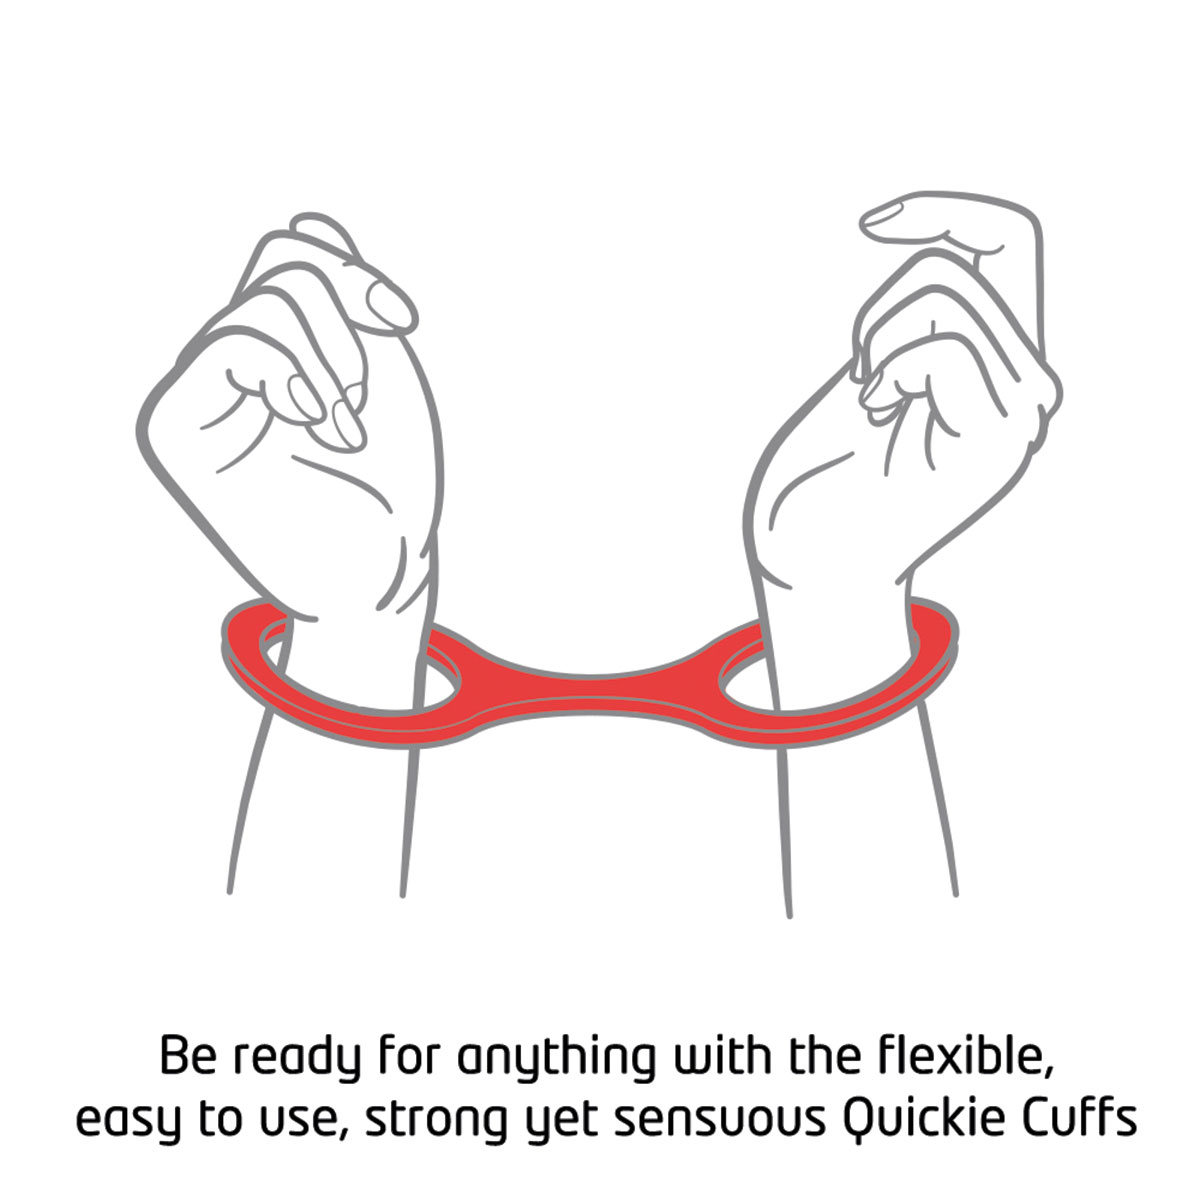 quickie-cuffs-how-to-wear.jpg